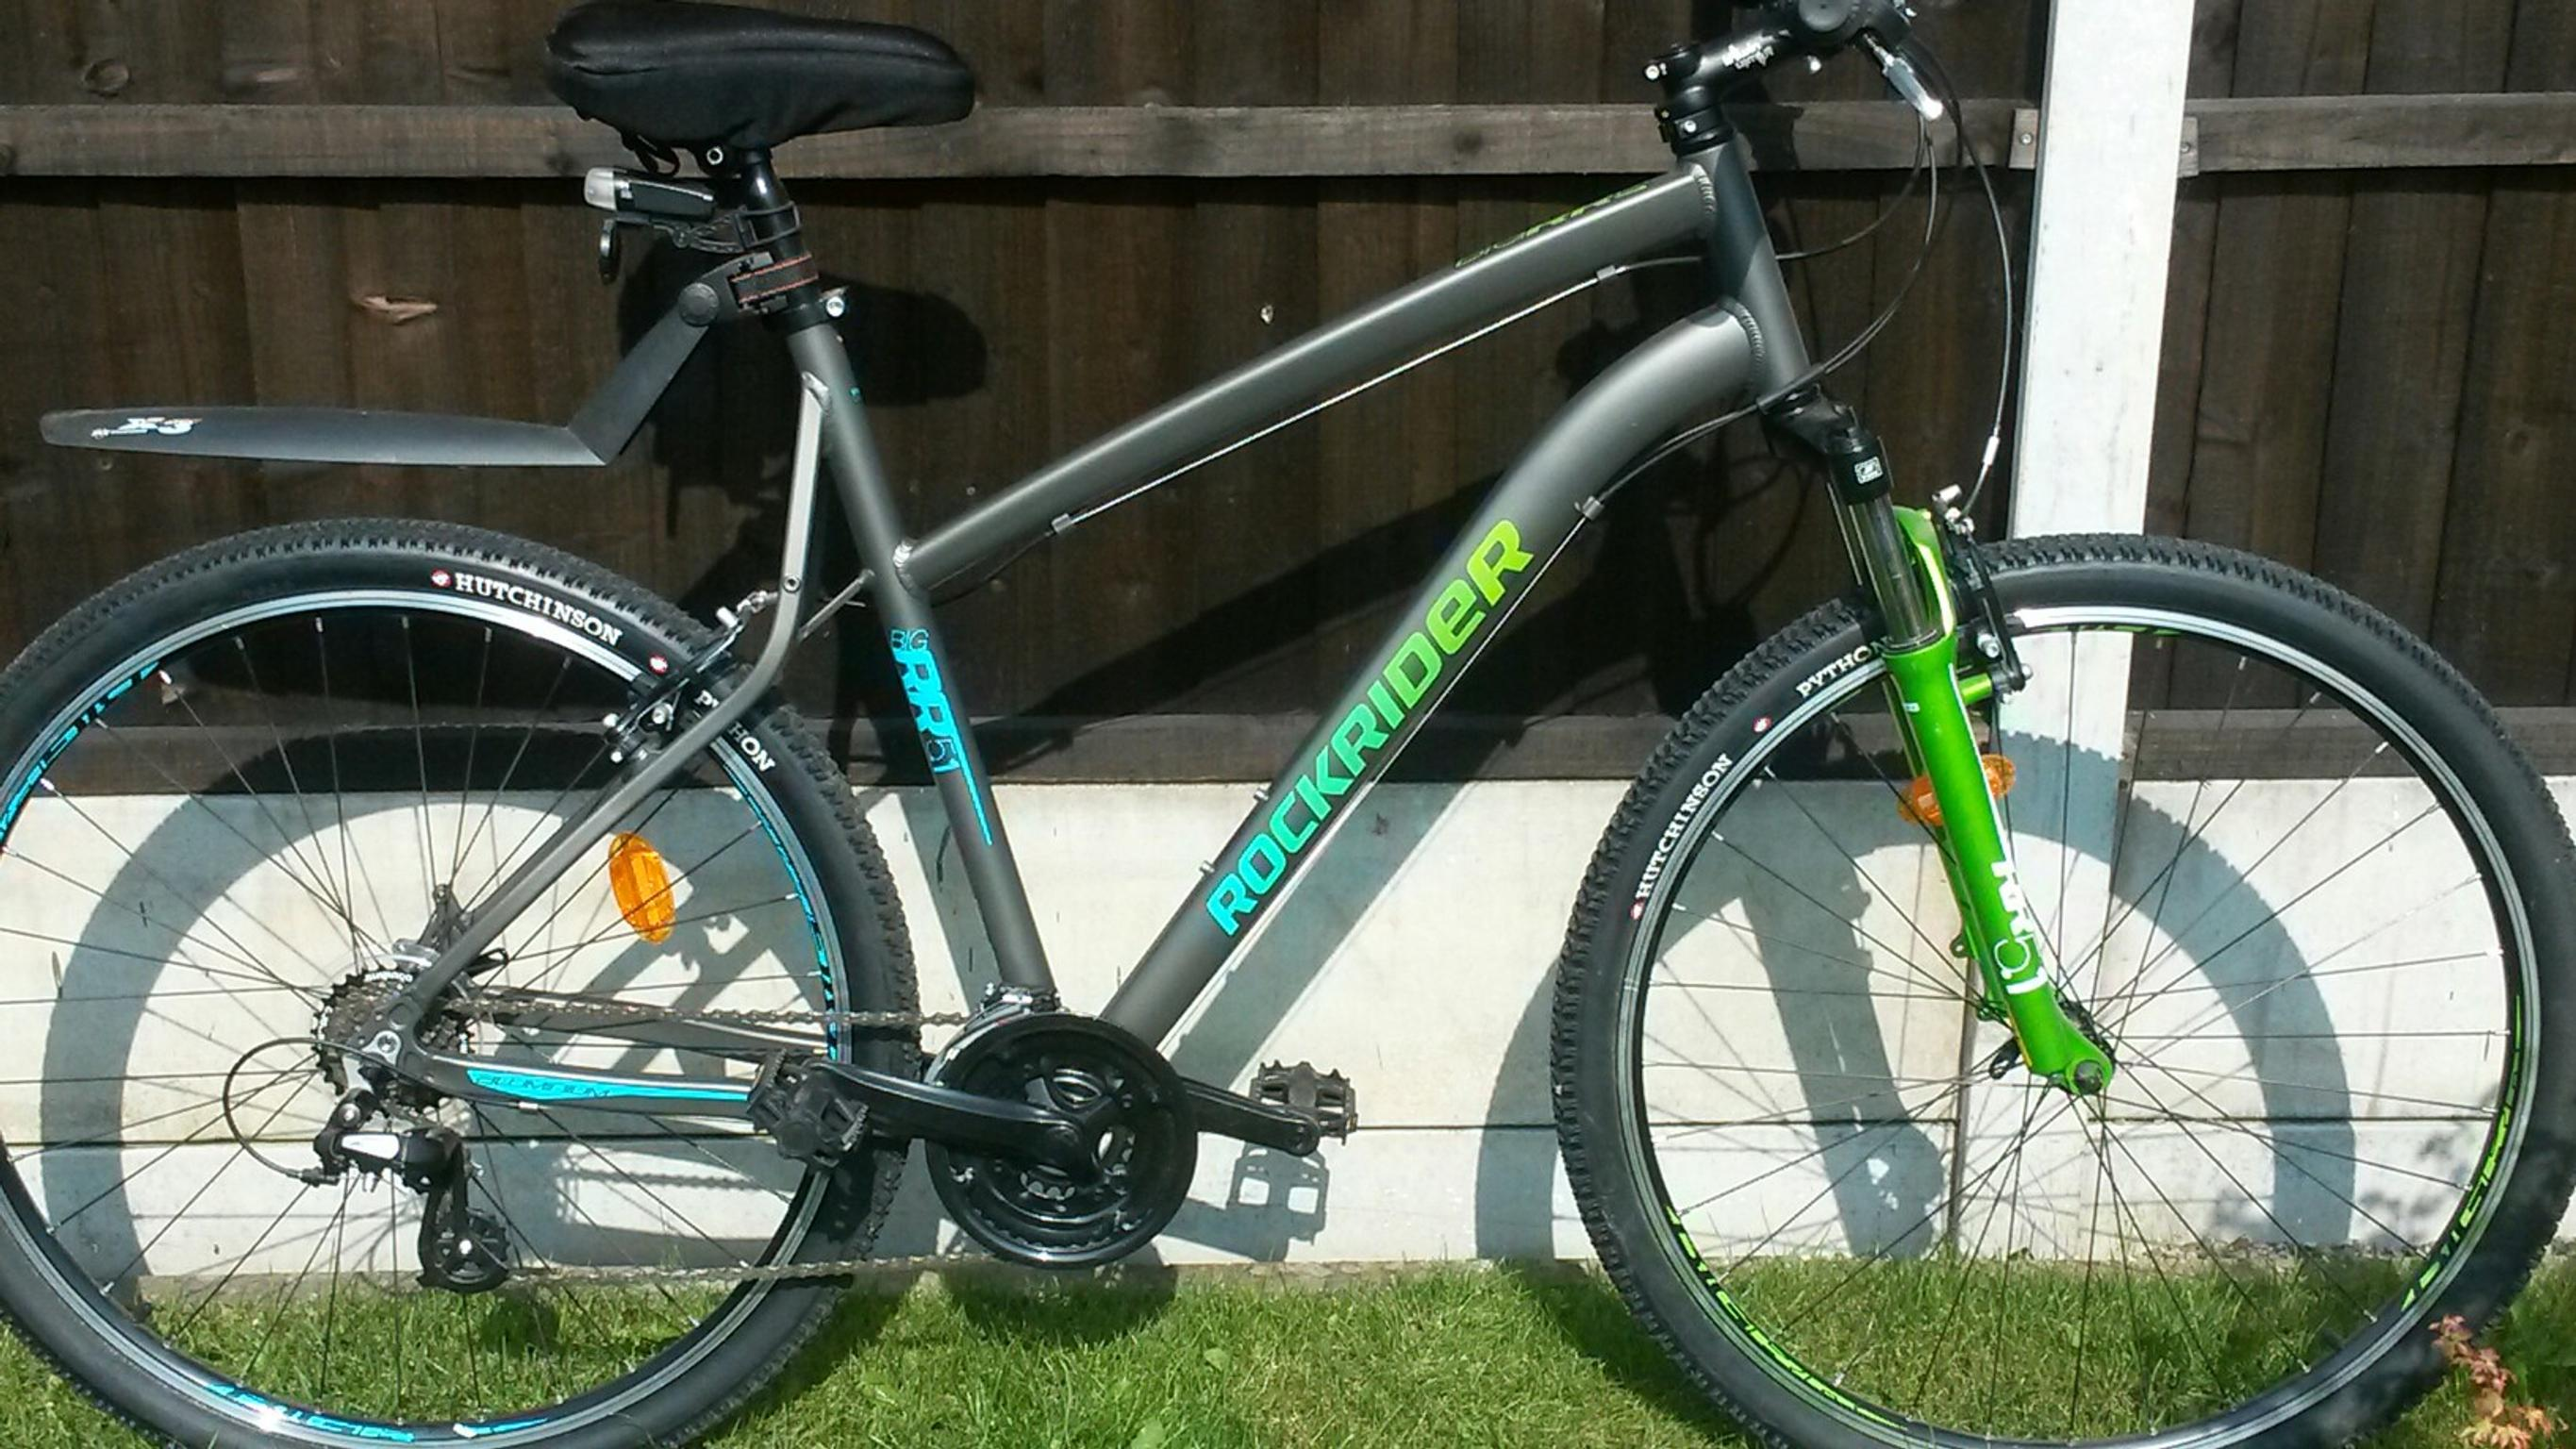 47e9d0eb6 21 Speed Rockrider RR5.1 Mountain Bike 29 in in DE24 Derby for £150.00 for  sale - Shpock